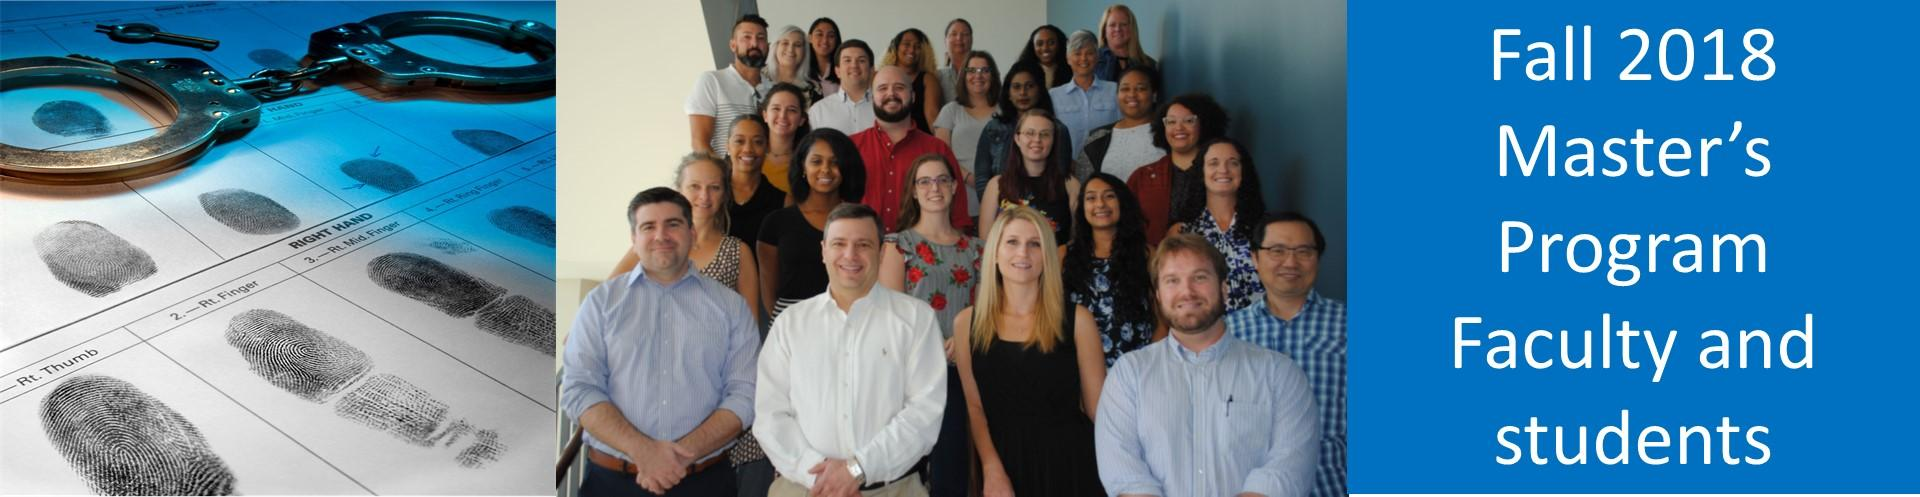 Fall 2018 MSCJ students and faculty